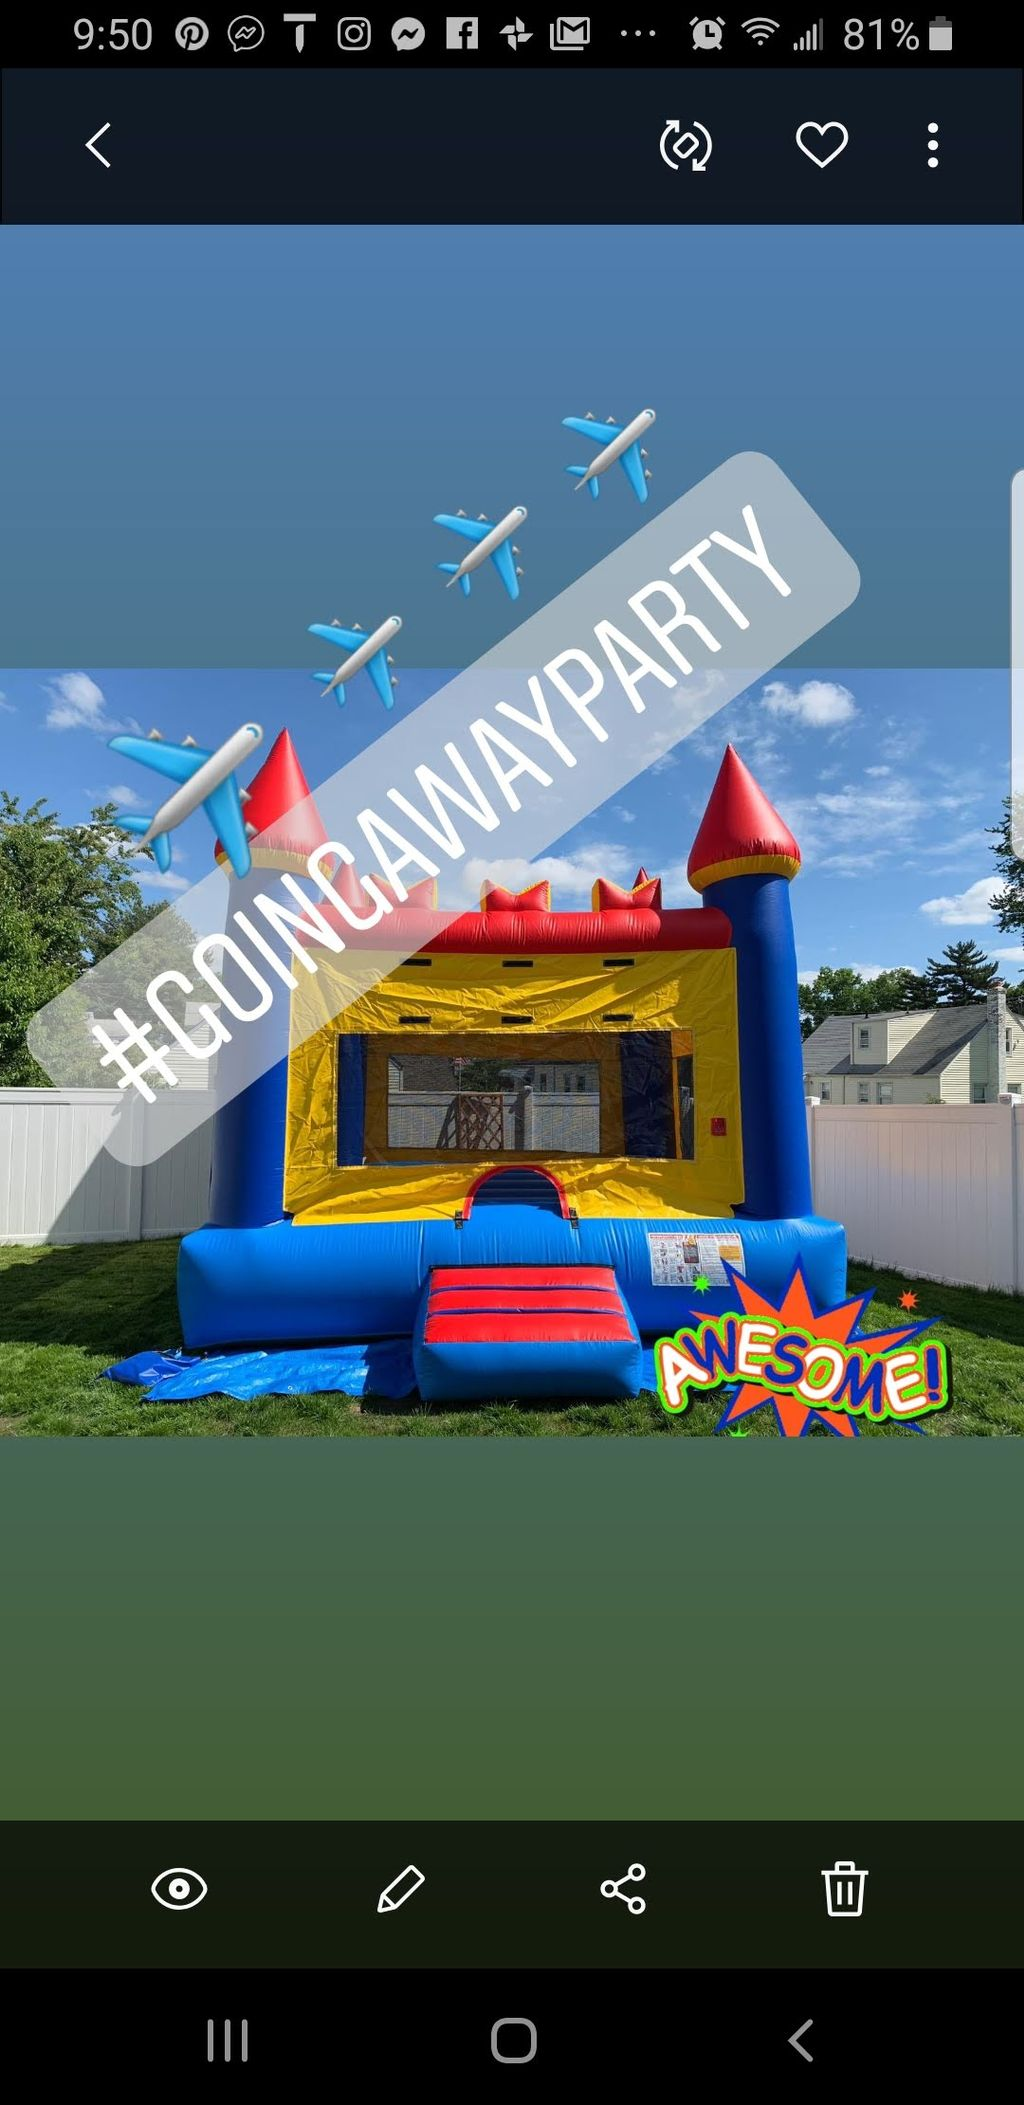 23 year old going away Party